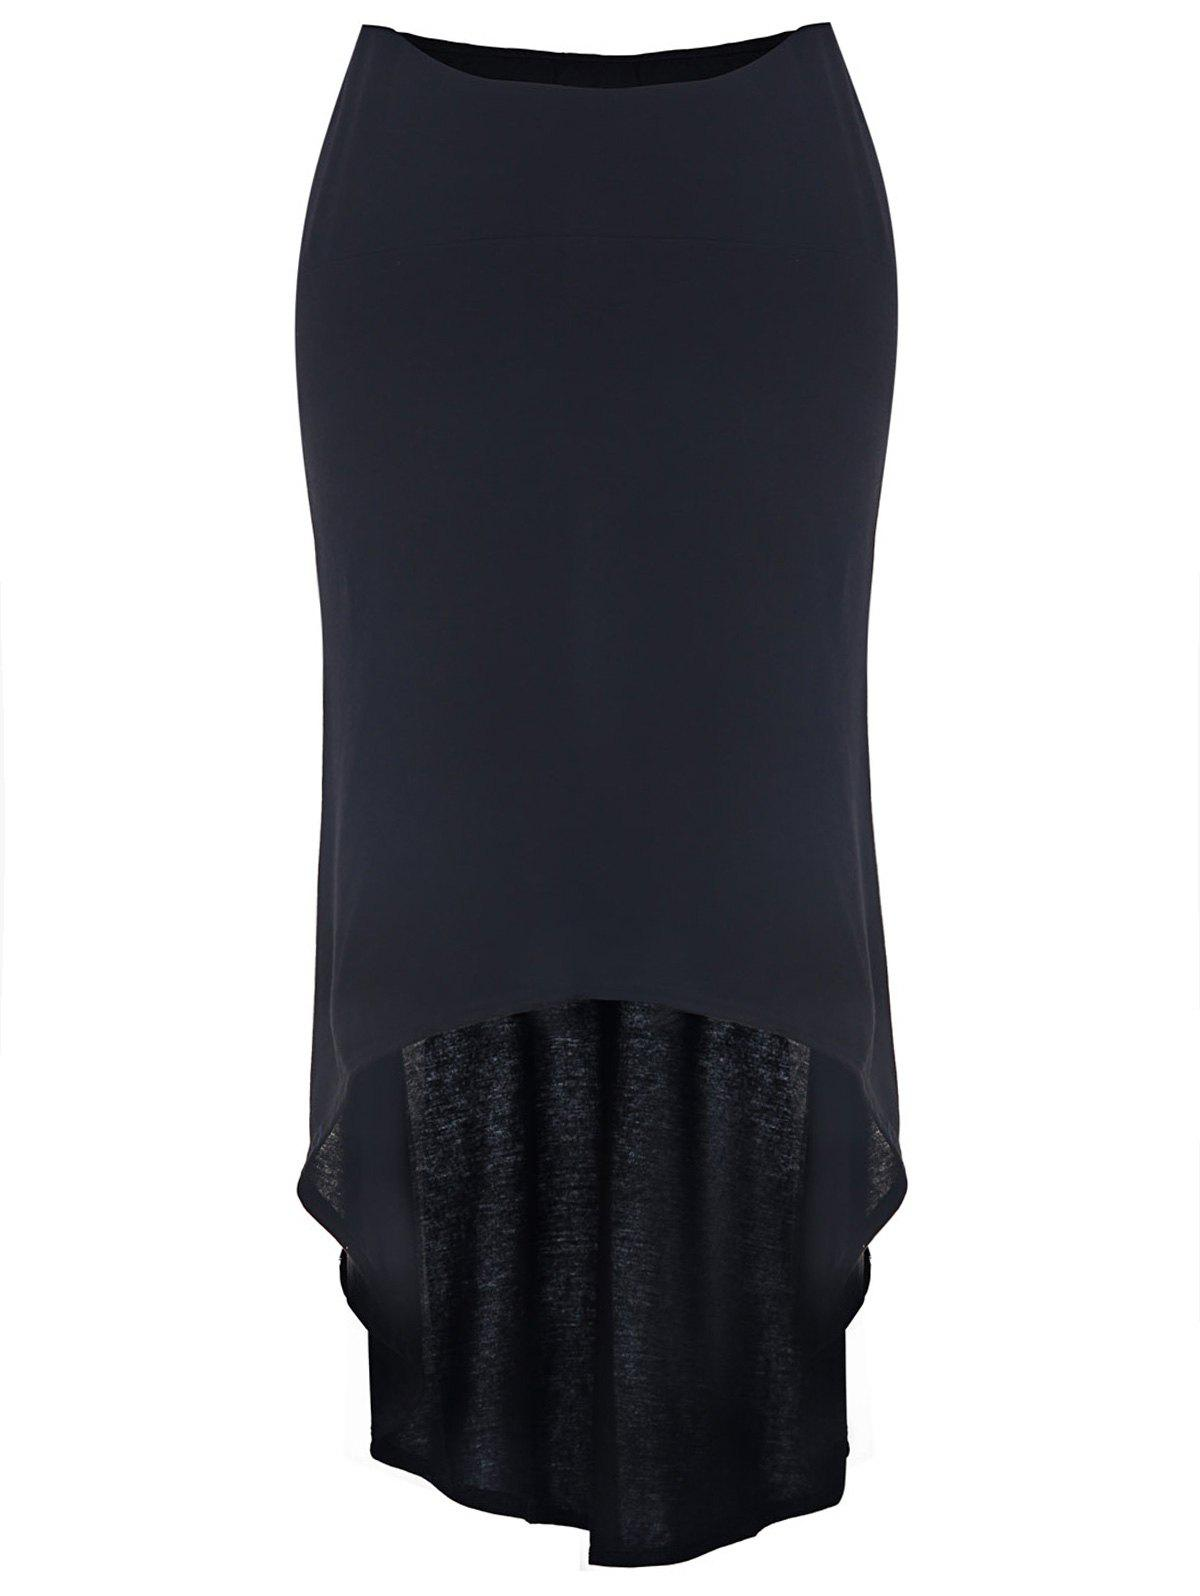 Charming Mid-Waisted Asymmetrical Solid Color Womens SkirtWomen<br><br><br>Size: S<br>Color: BLACK